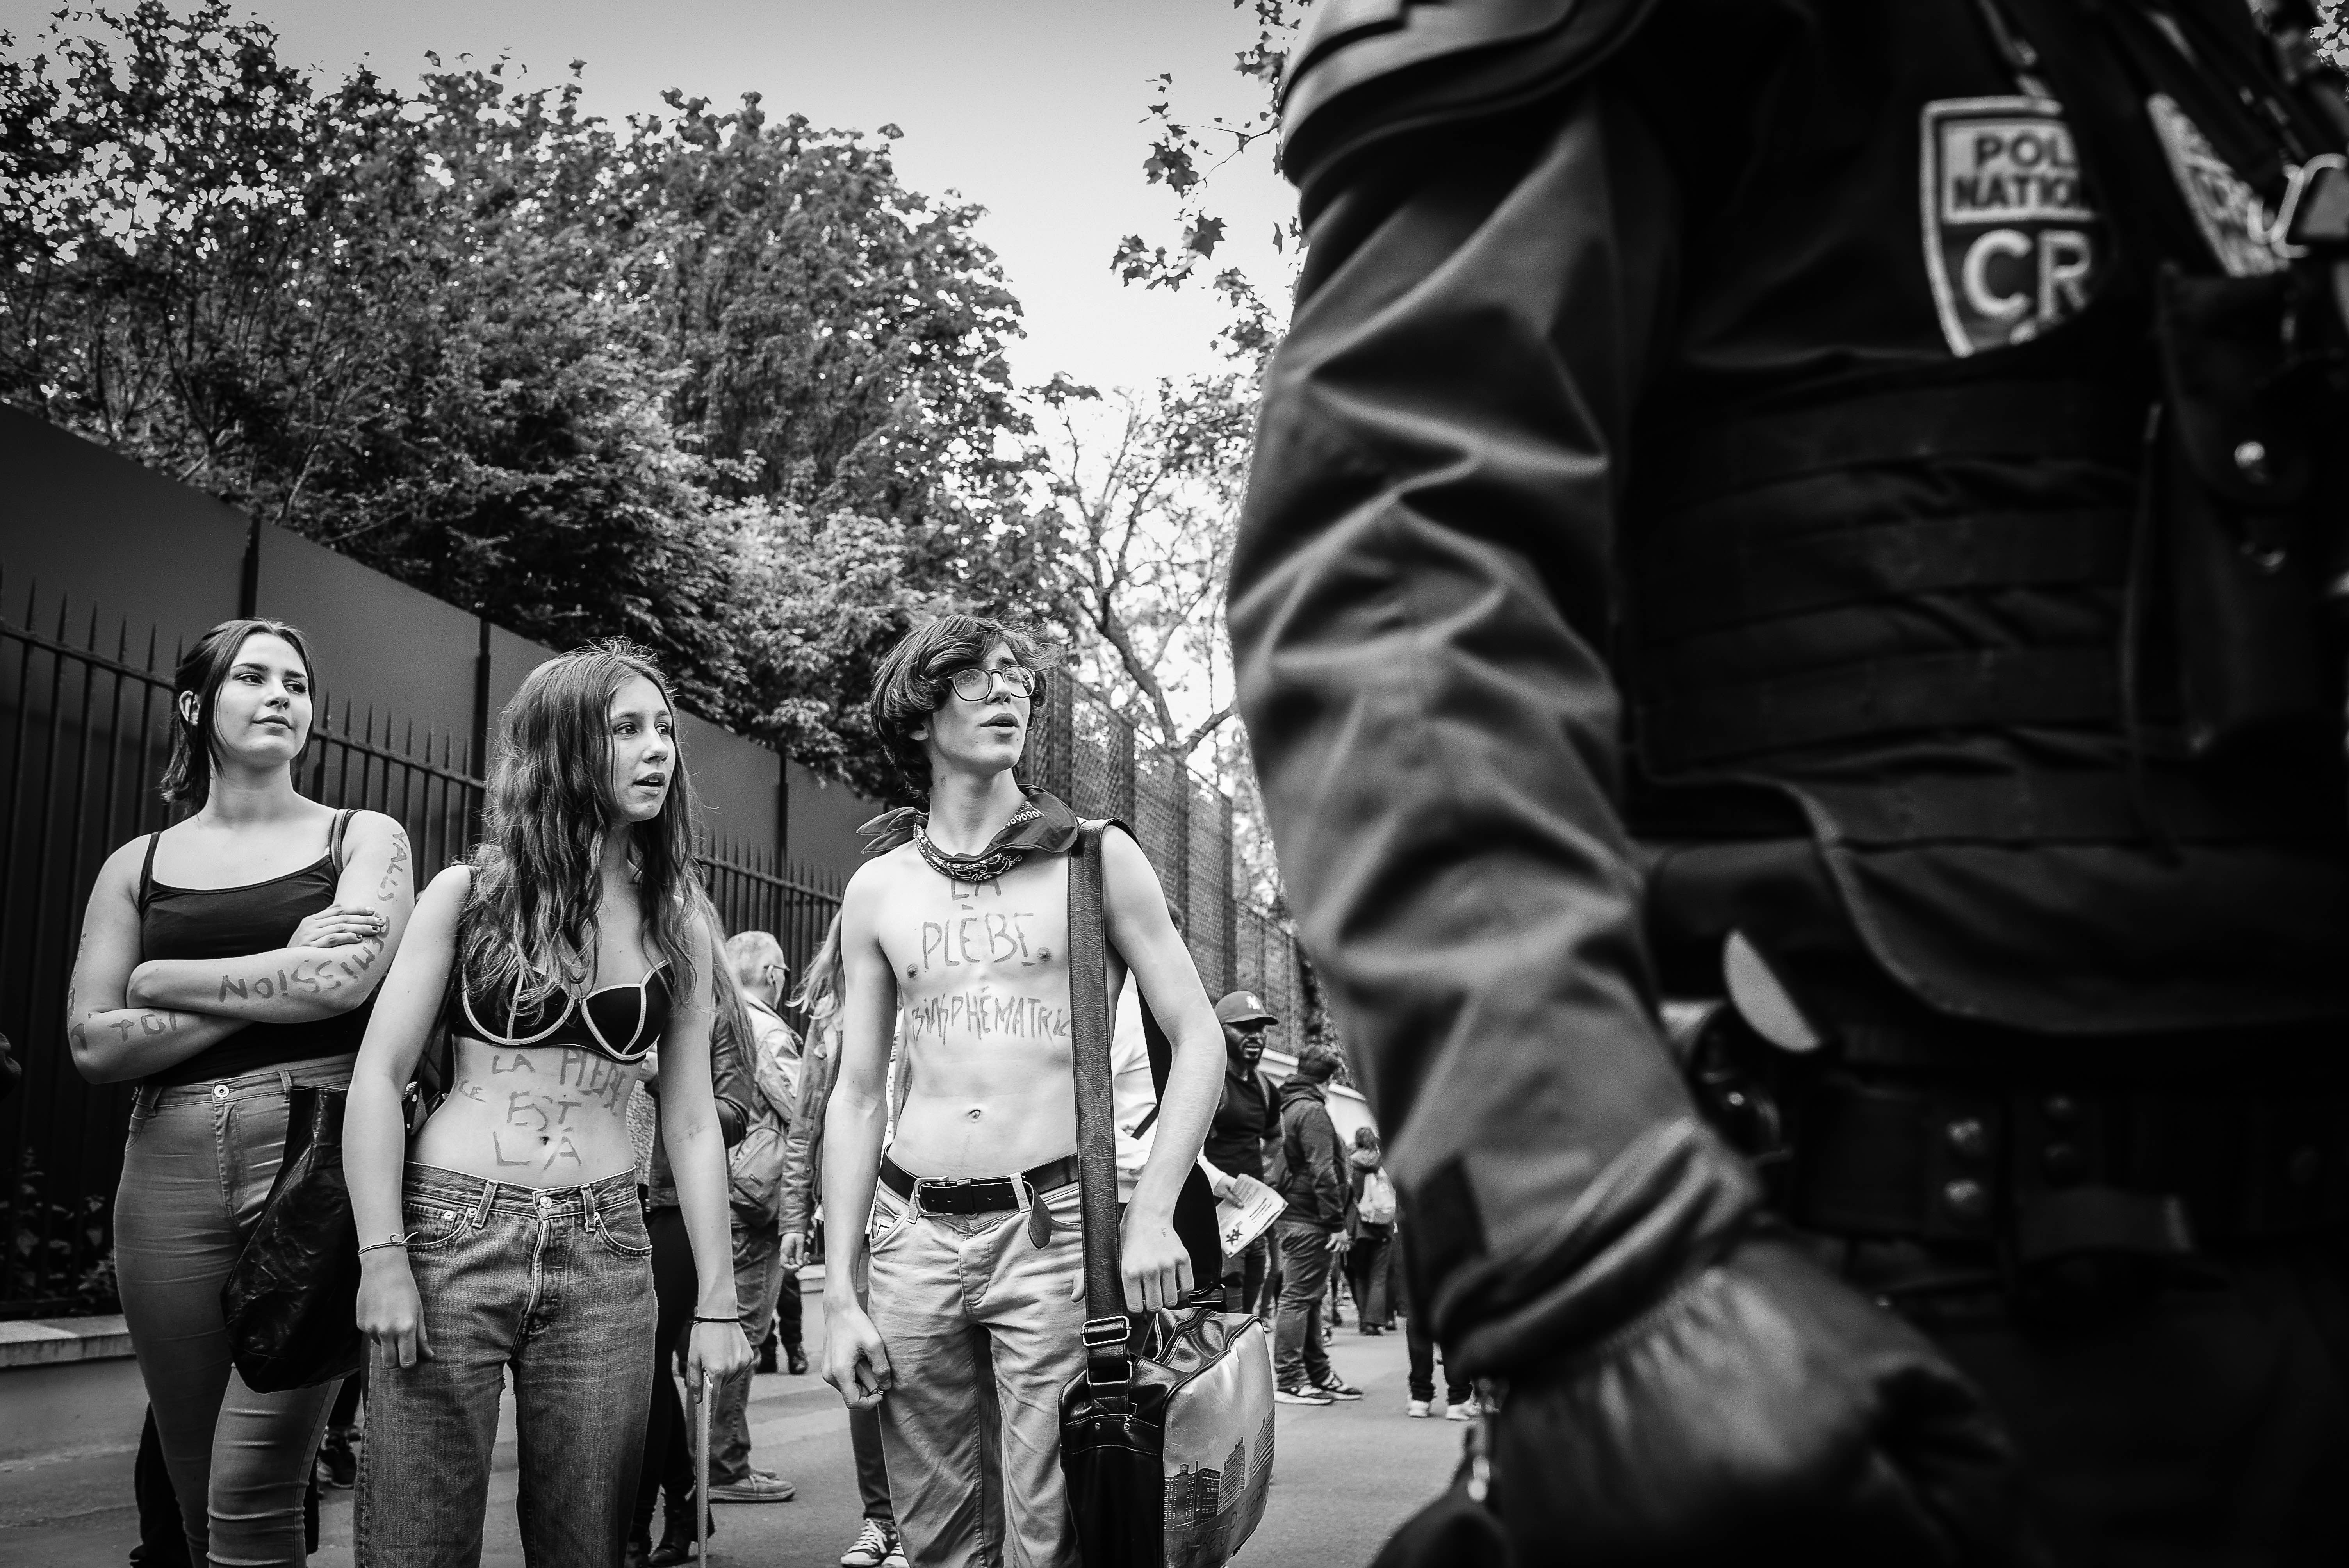 Lycéens (high school students) taking part in a demonstration against the Loi travail, Paris, 17 May 2016. The writings on their bodies describe them as blaspheming plebeians. Credit: Laurent Gayer